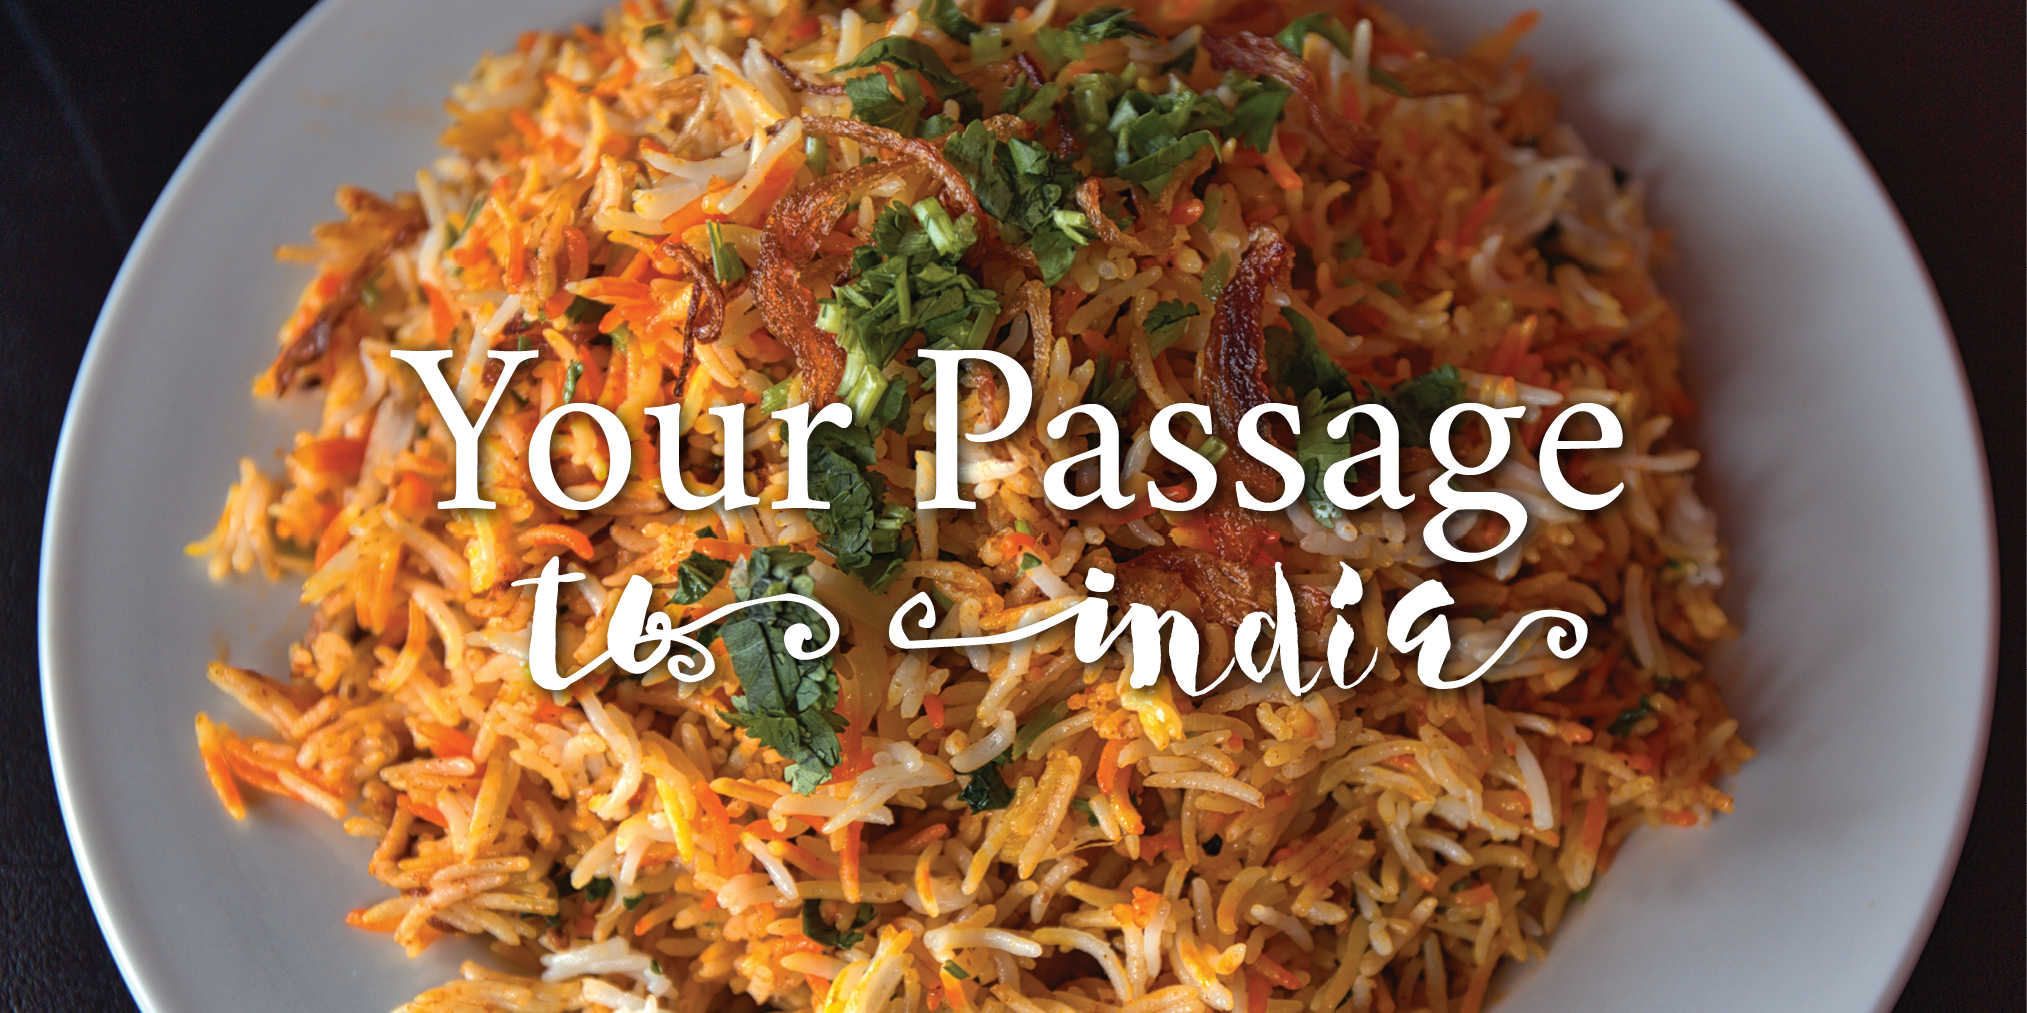 Your Passage to India - plate of Indian food